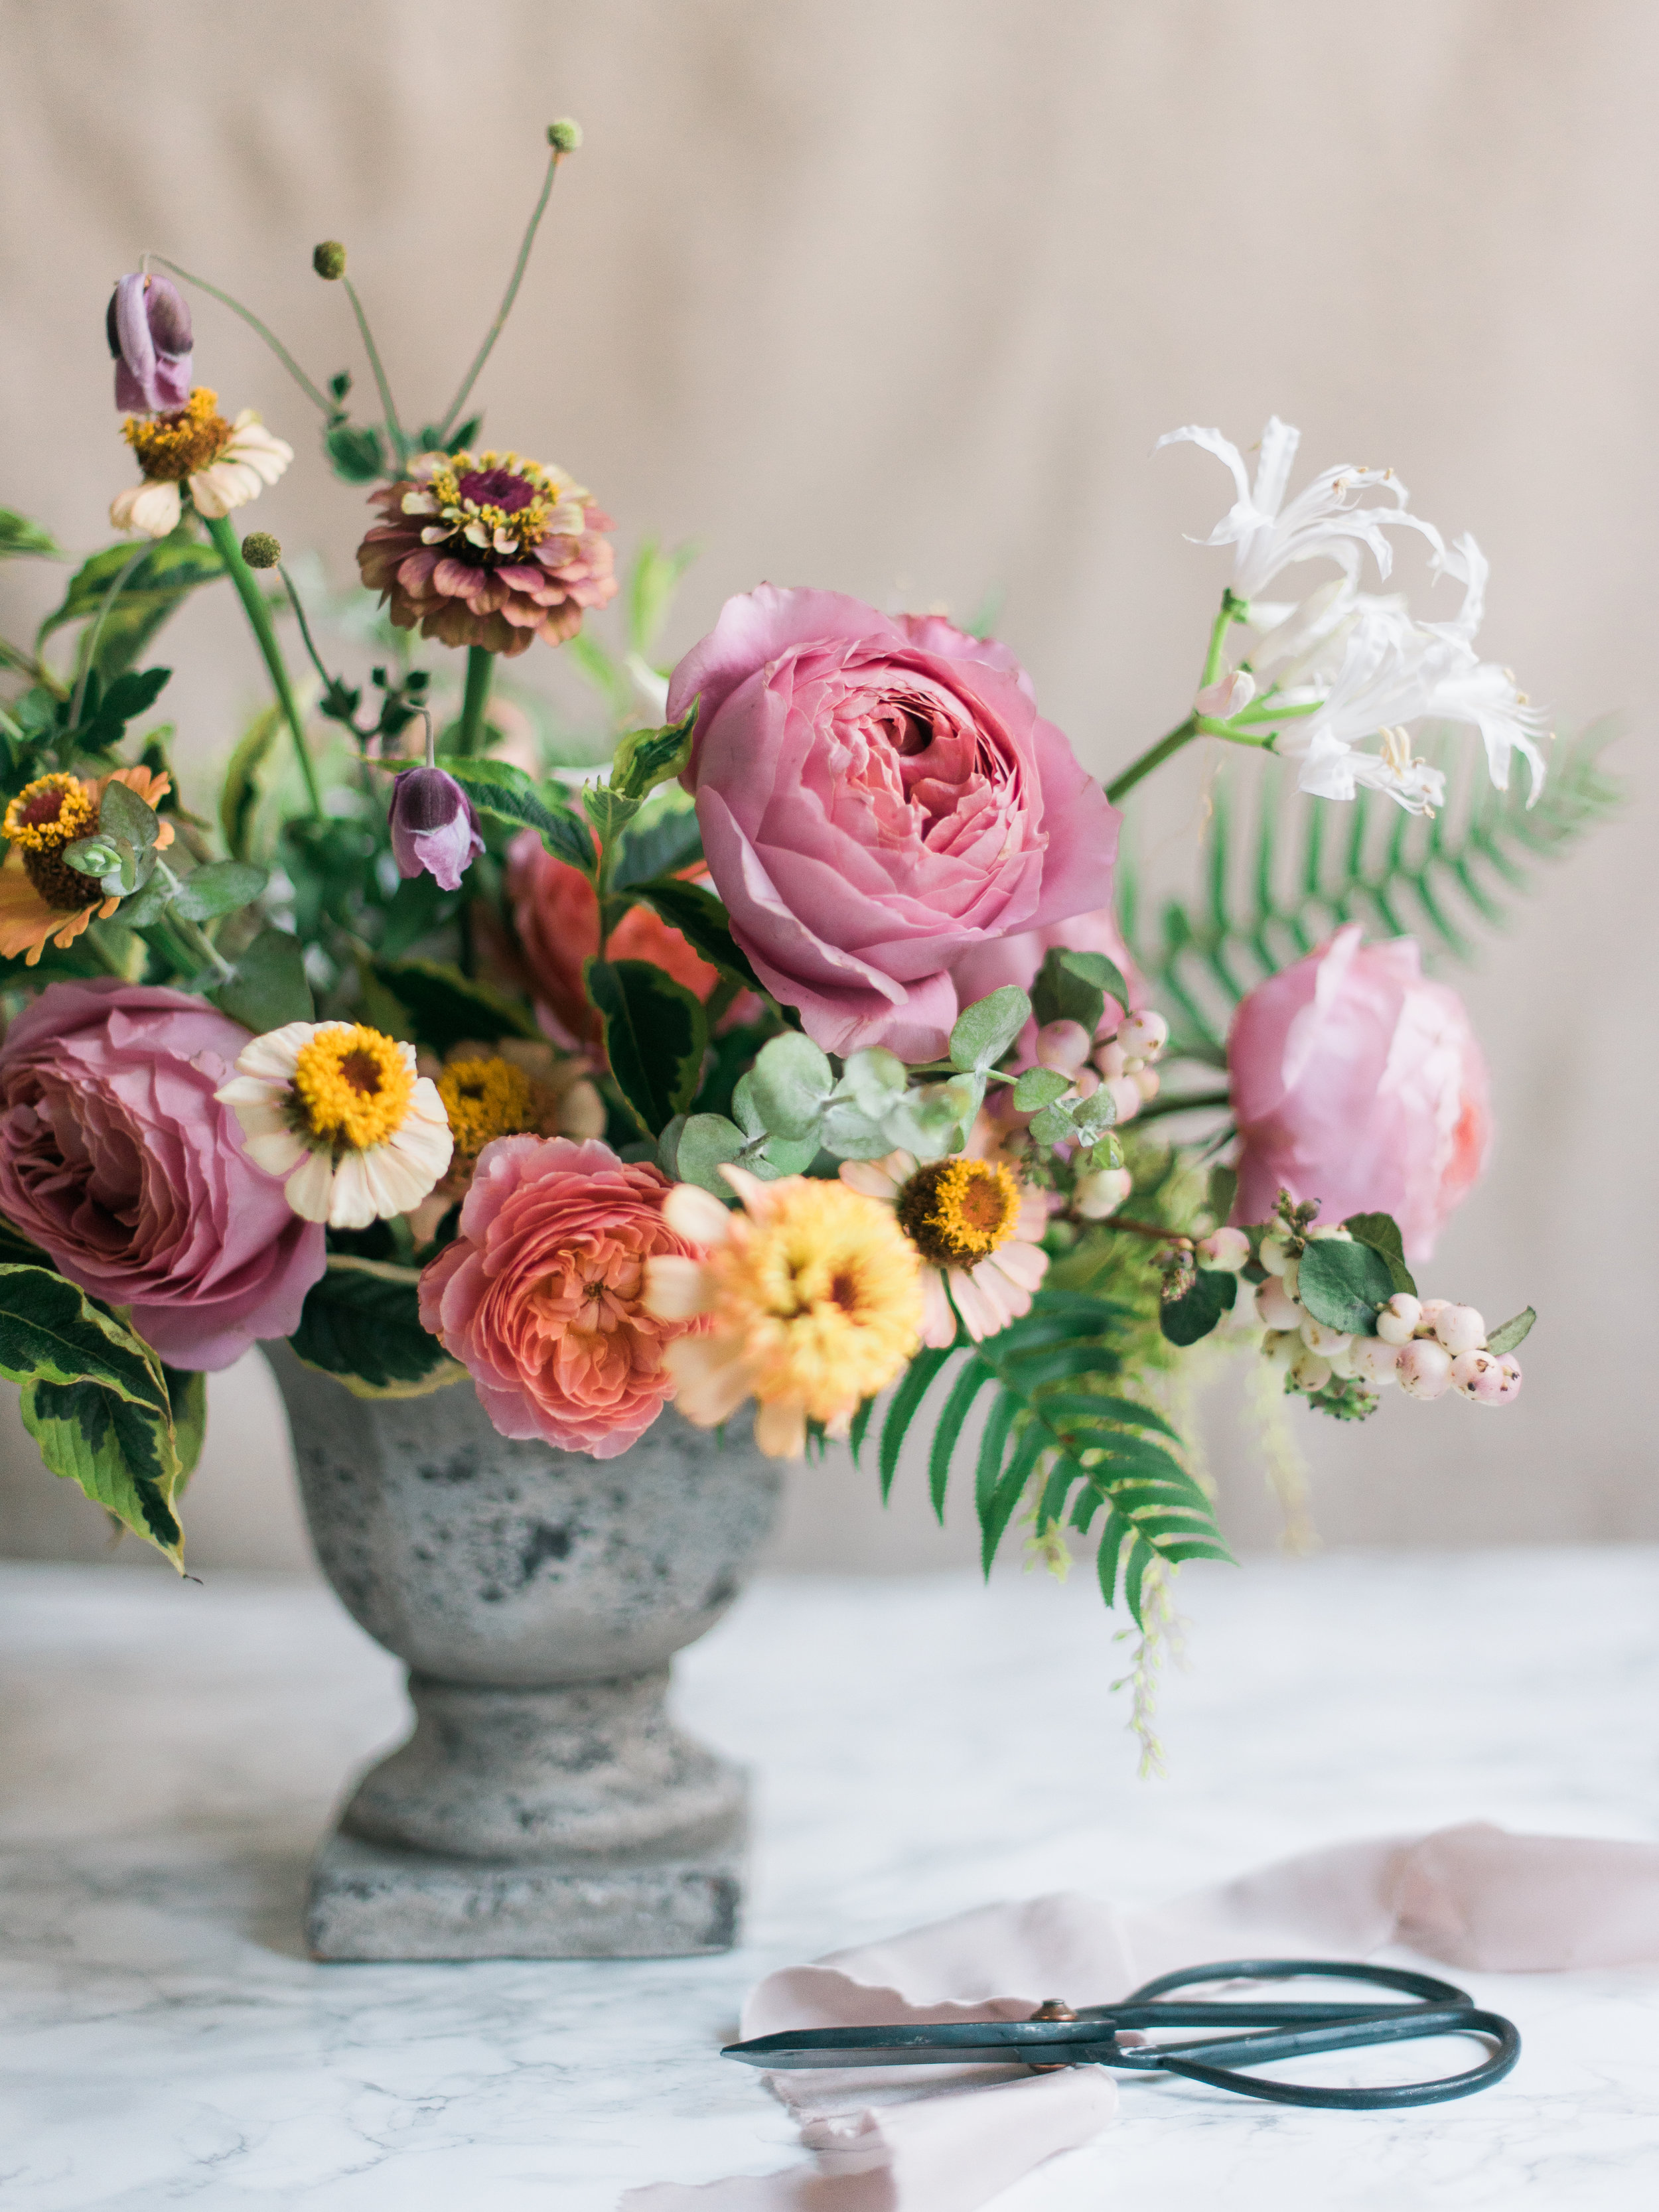 summer flower arrangement in shades of pink, yellow, peach and orange featuring zinnias, garden roses, ferns, and nerines